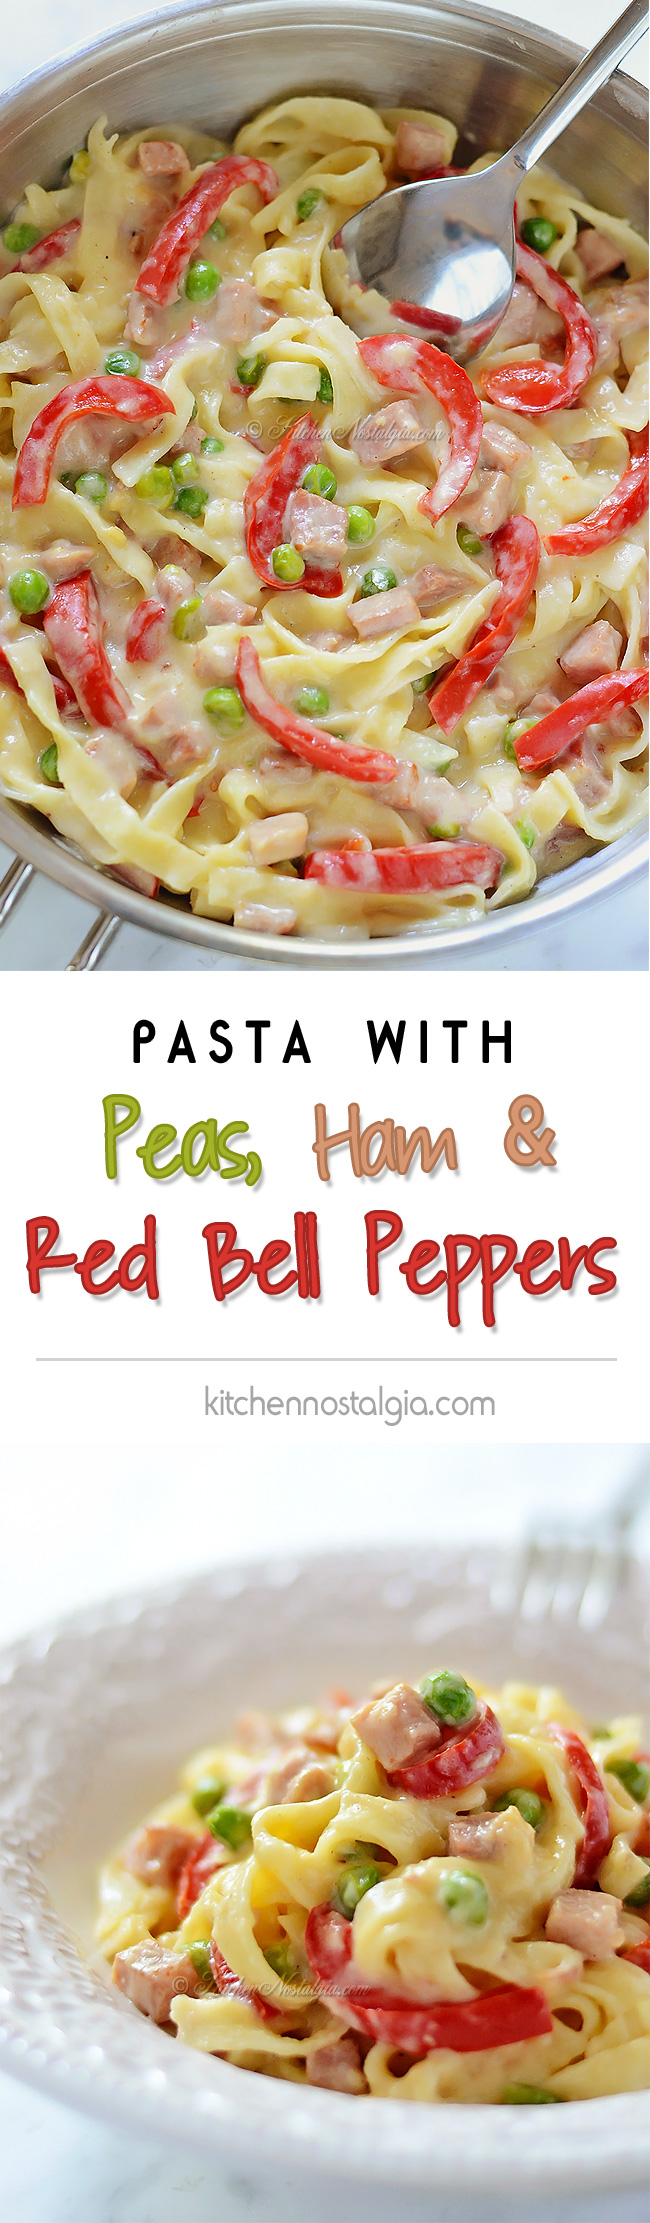 Pasta with Peas, Ham and Red Bell Peppers